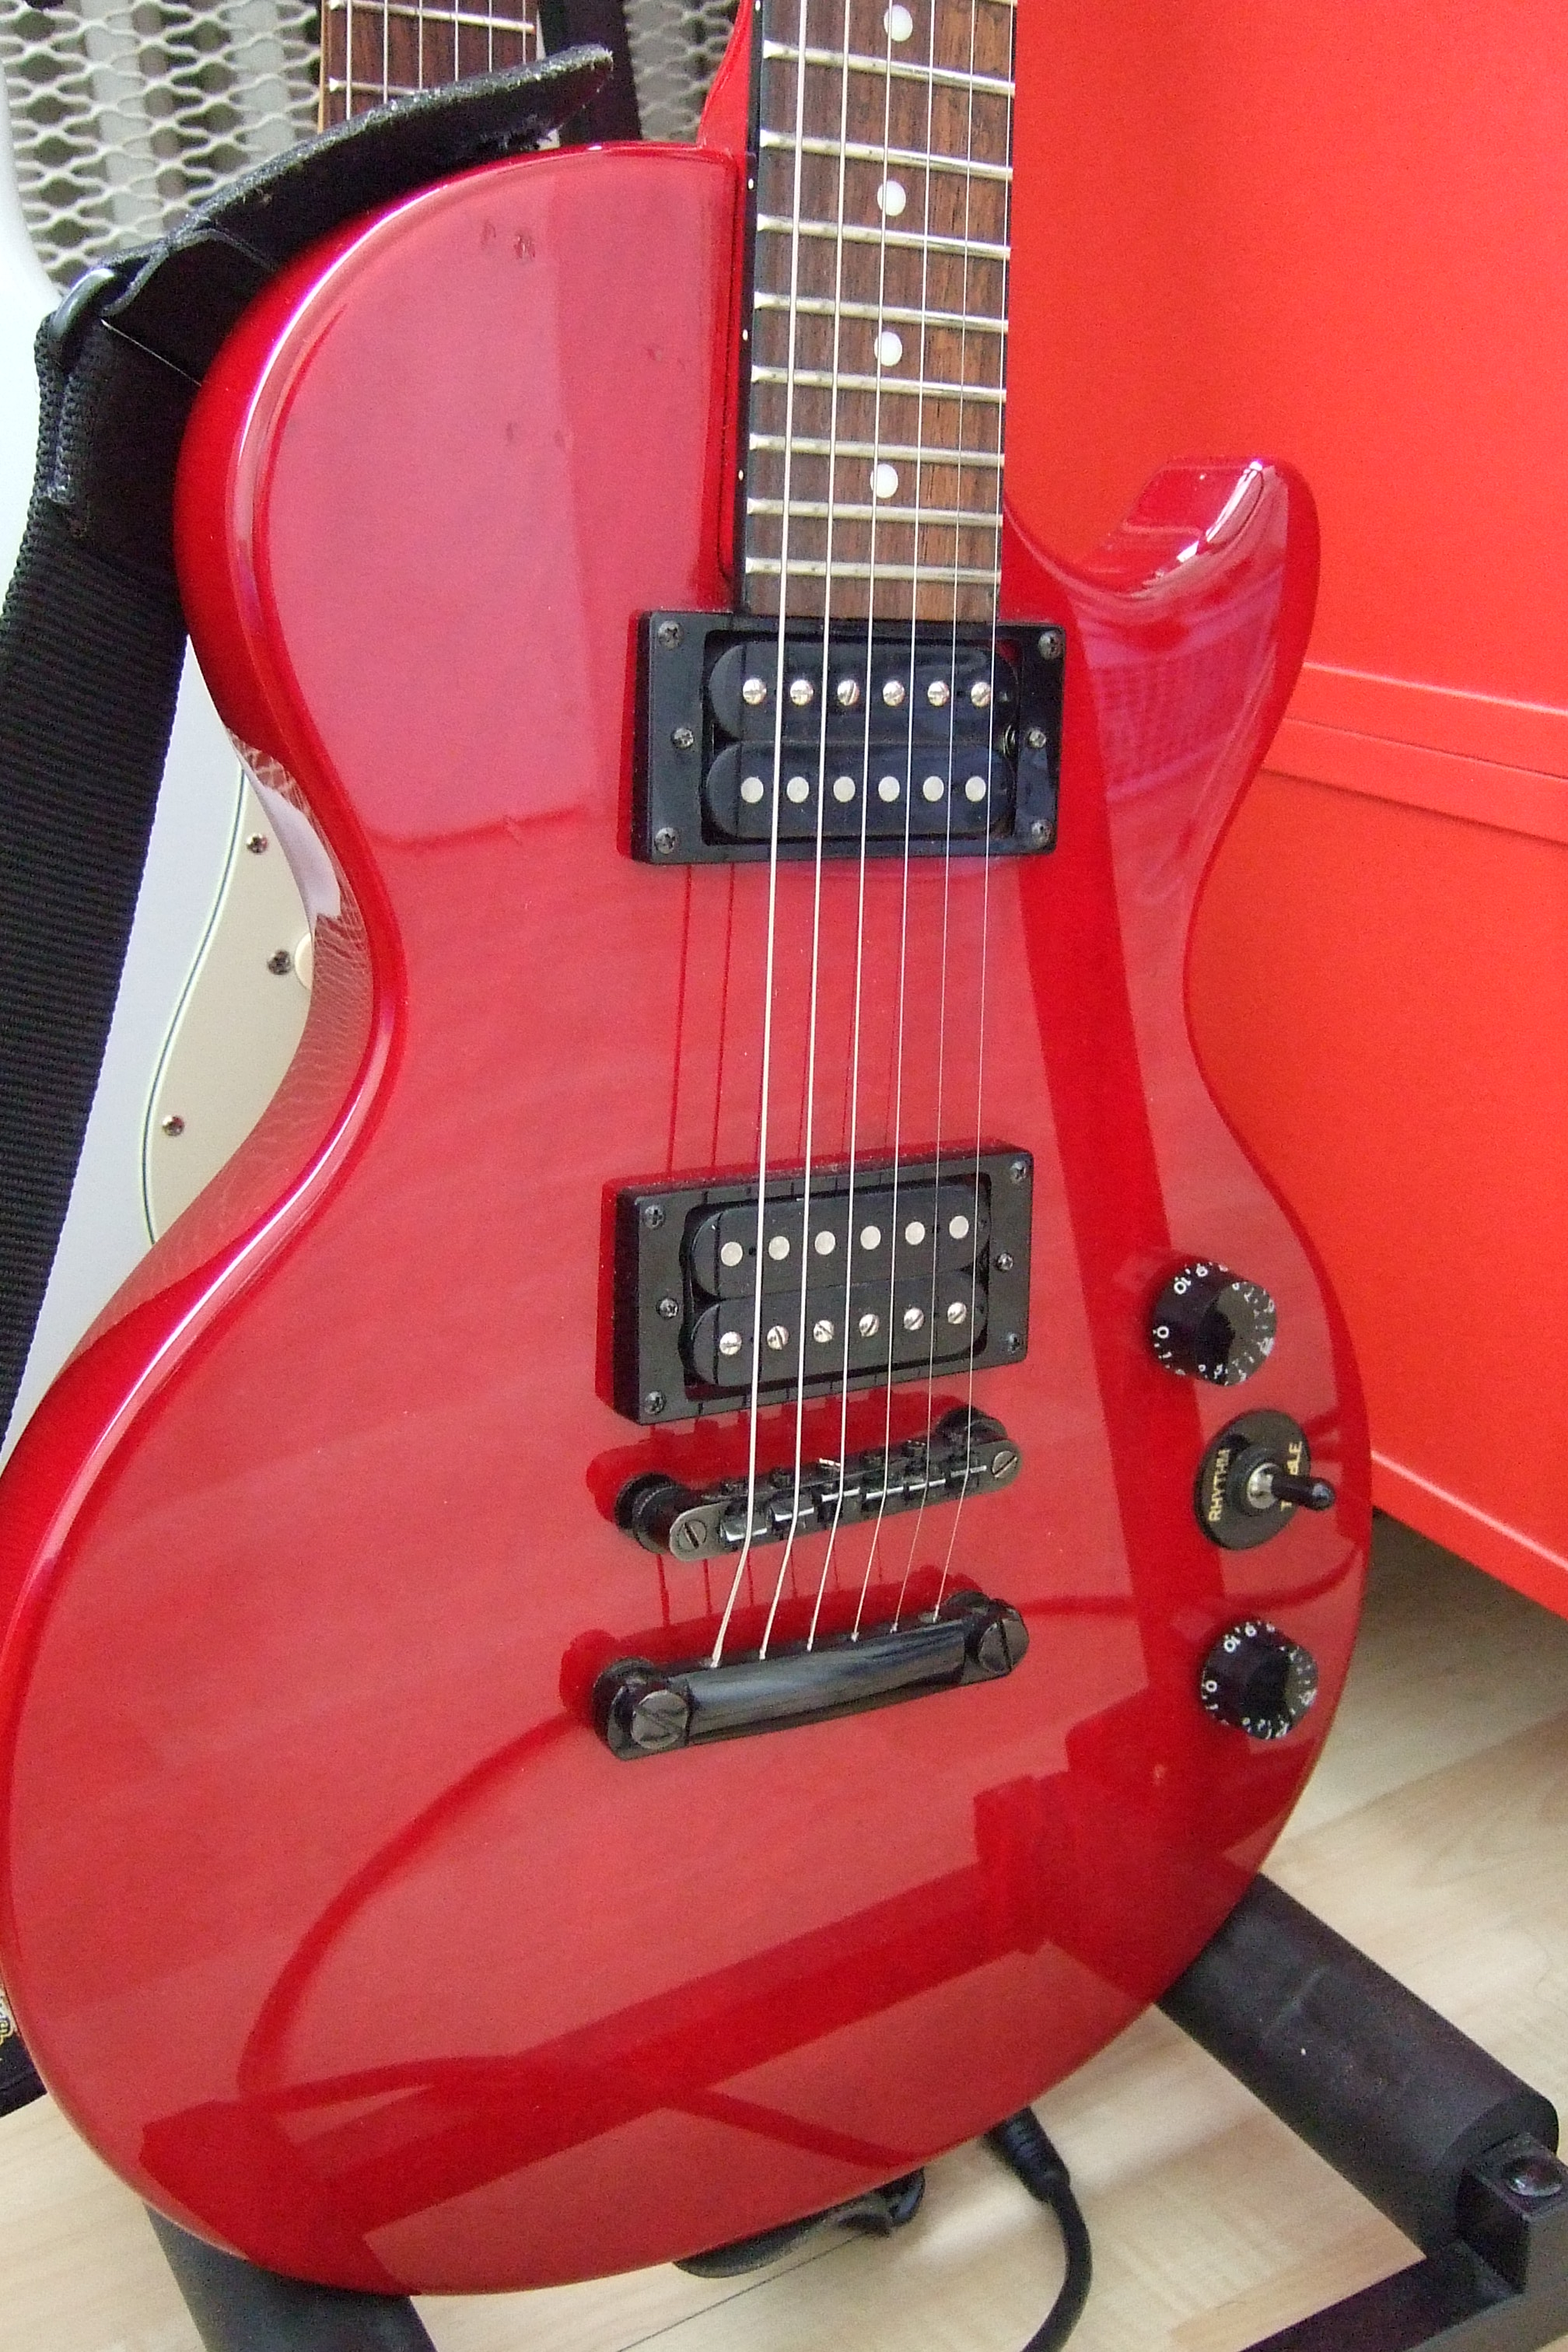 Epiphone Les Paul Special Ii Upgrade File Ug Community Wiring Question Wine Red Image 352050 Audiofanzine